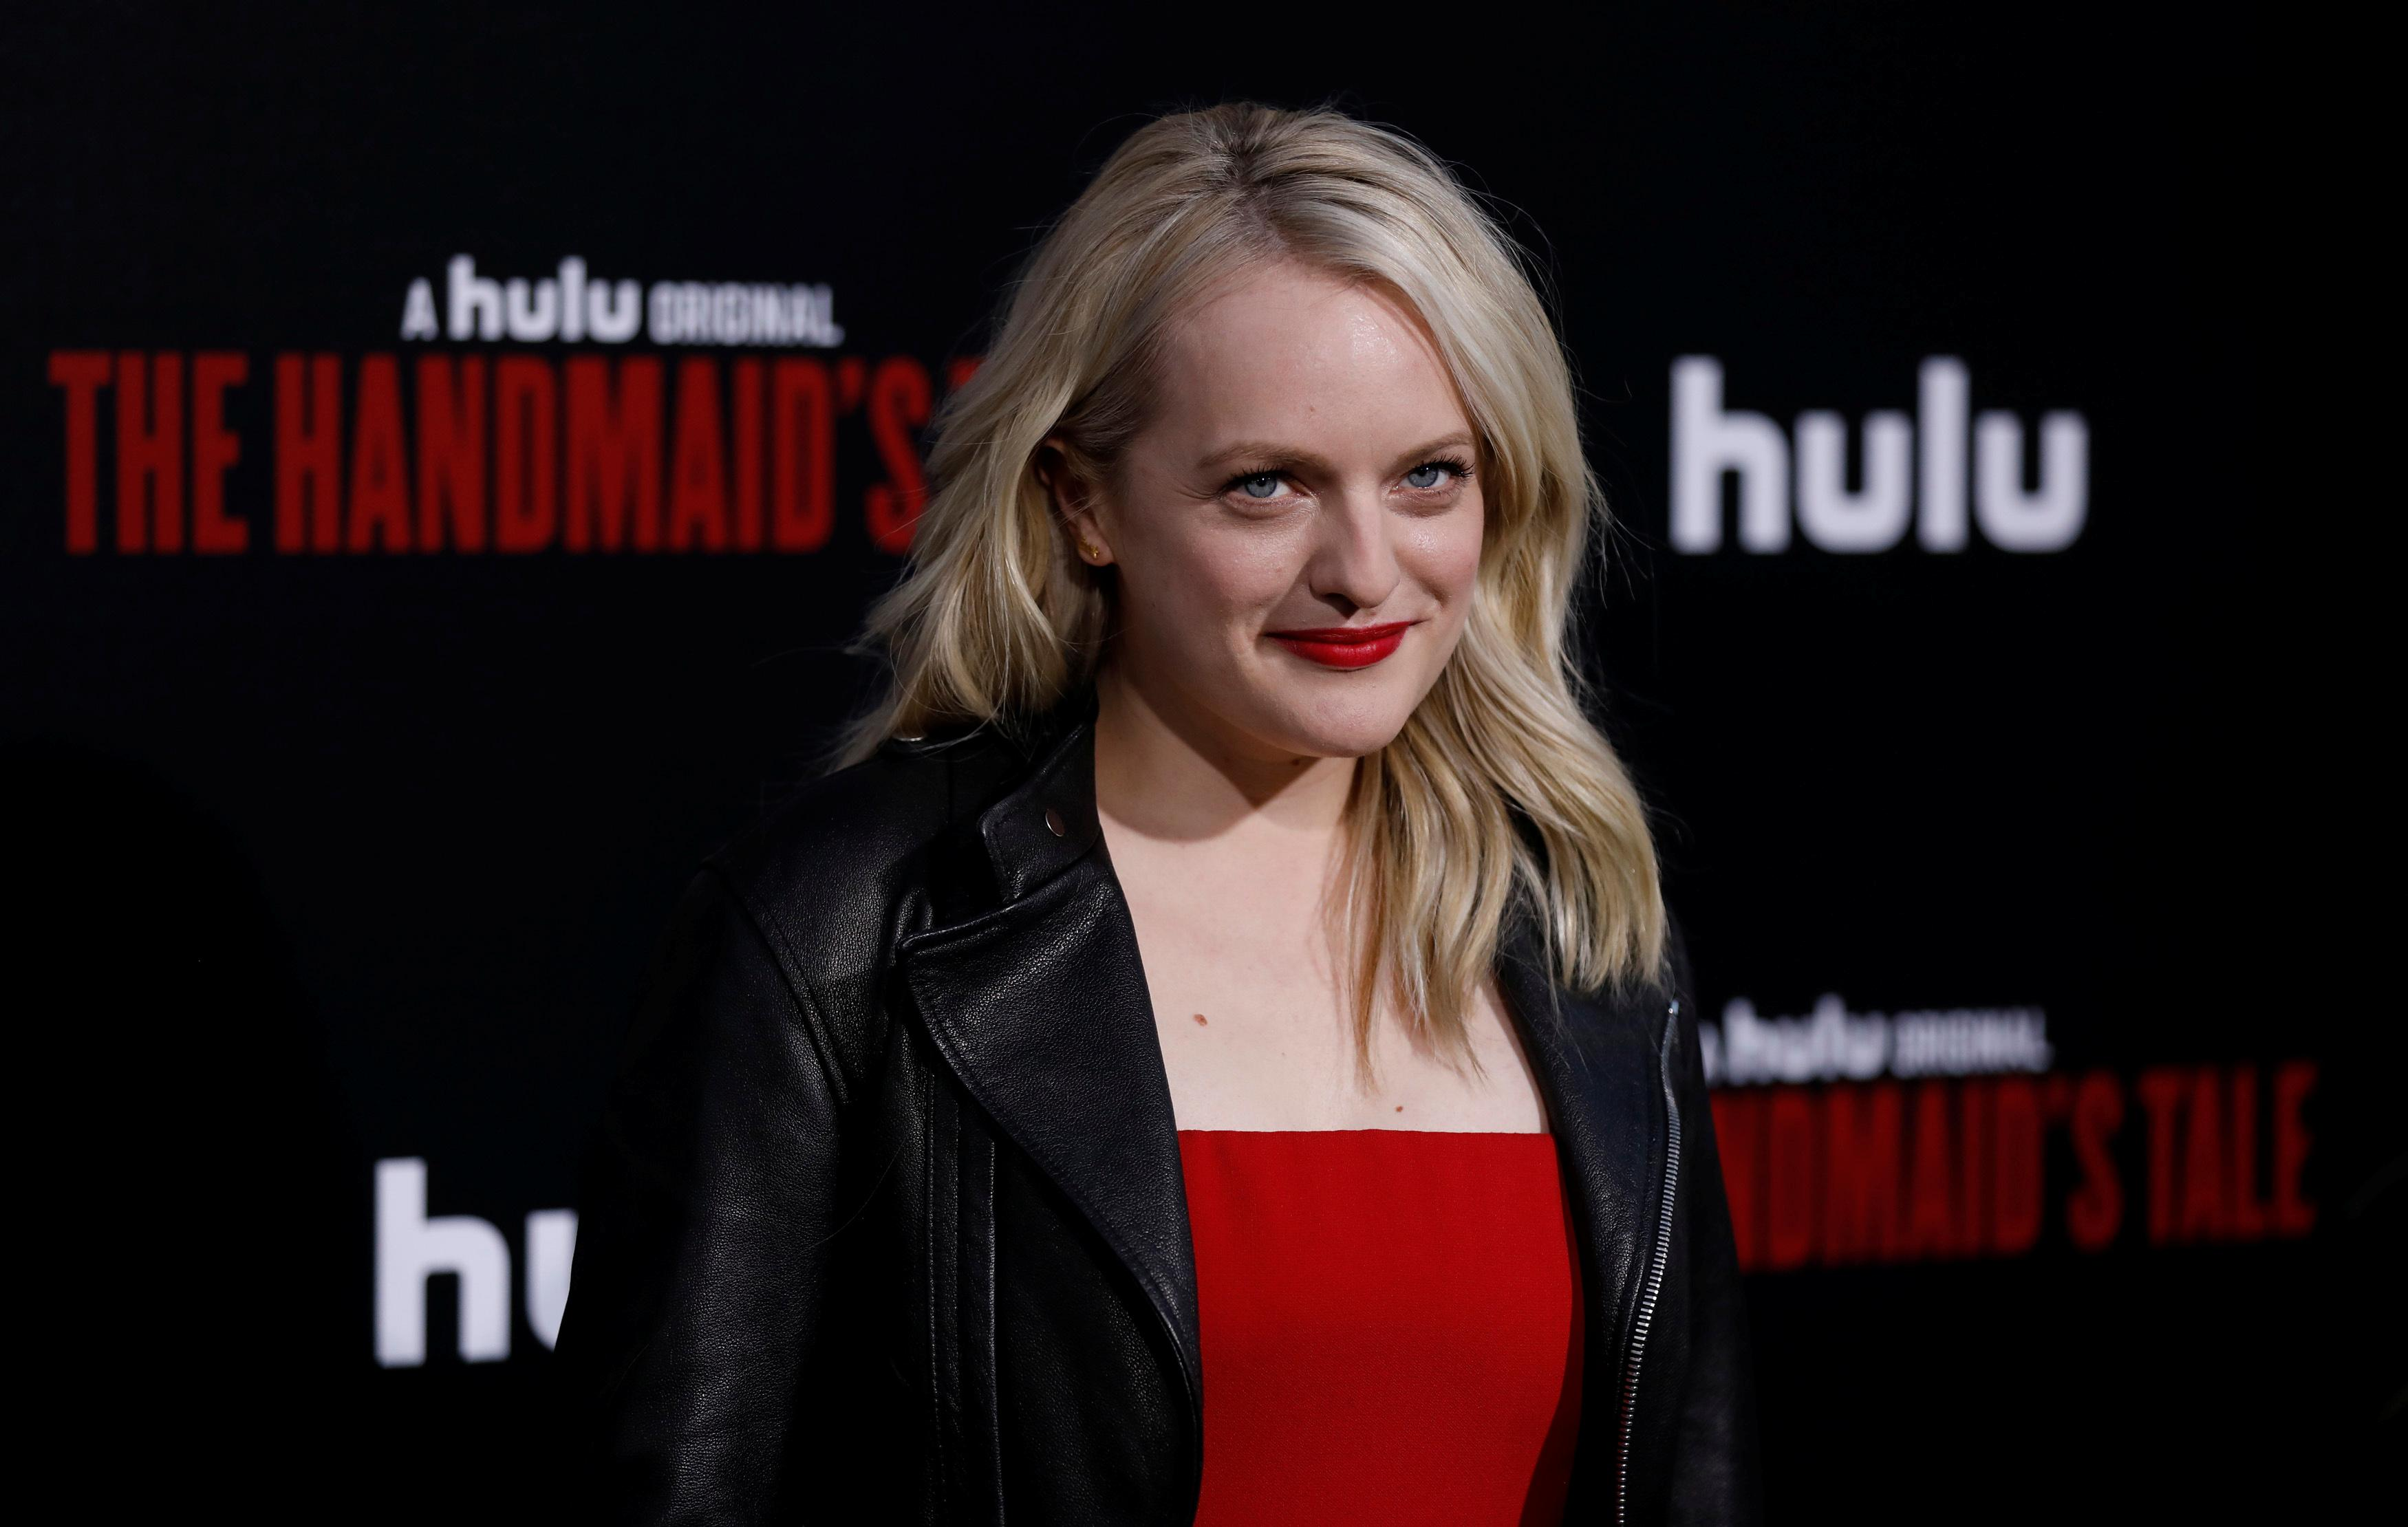 Cast member Elisabeth Moss poses at the premiere for the second season of the television series